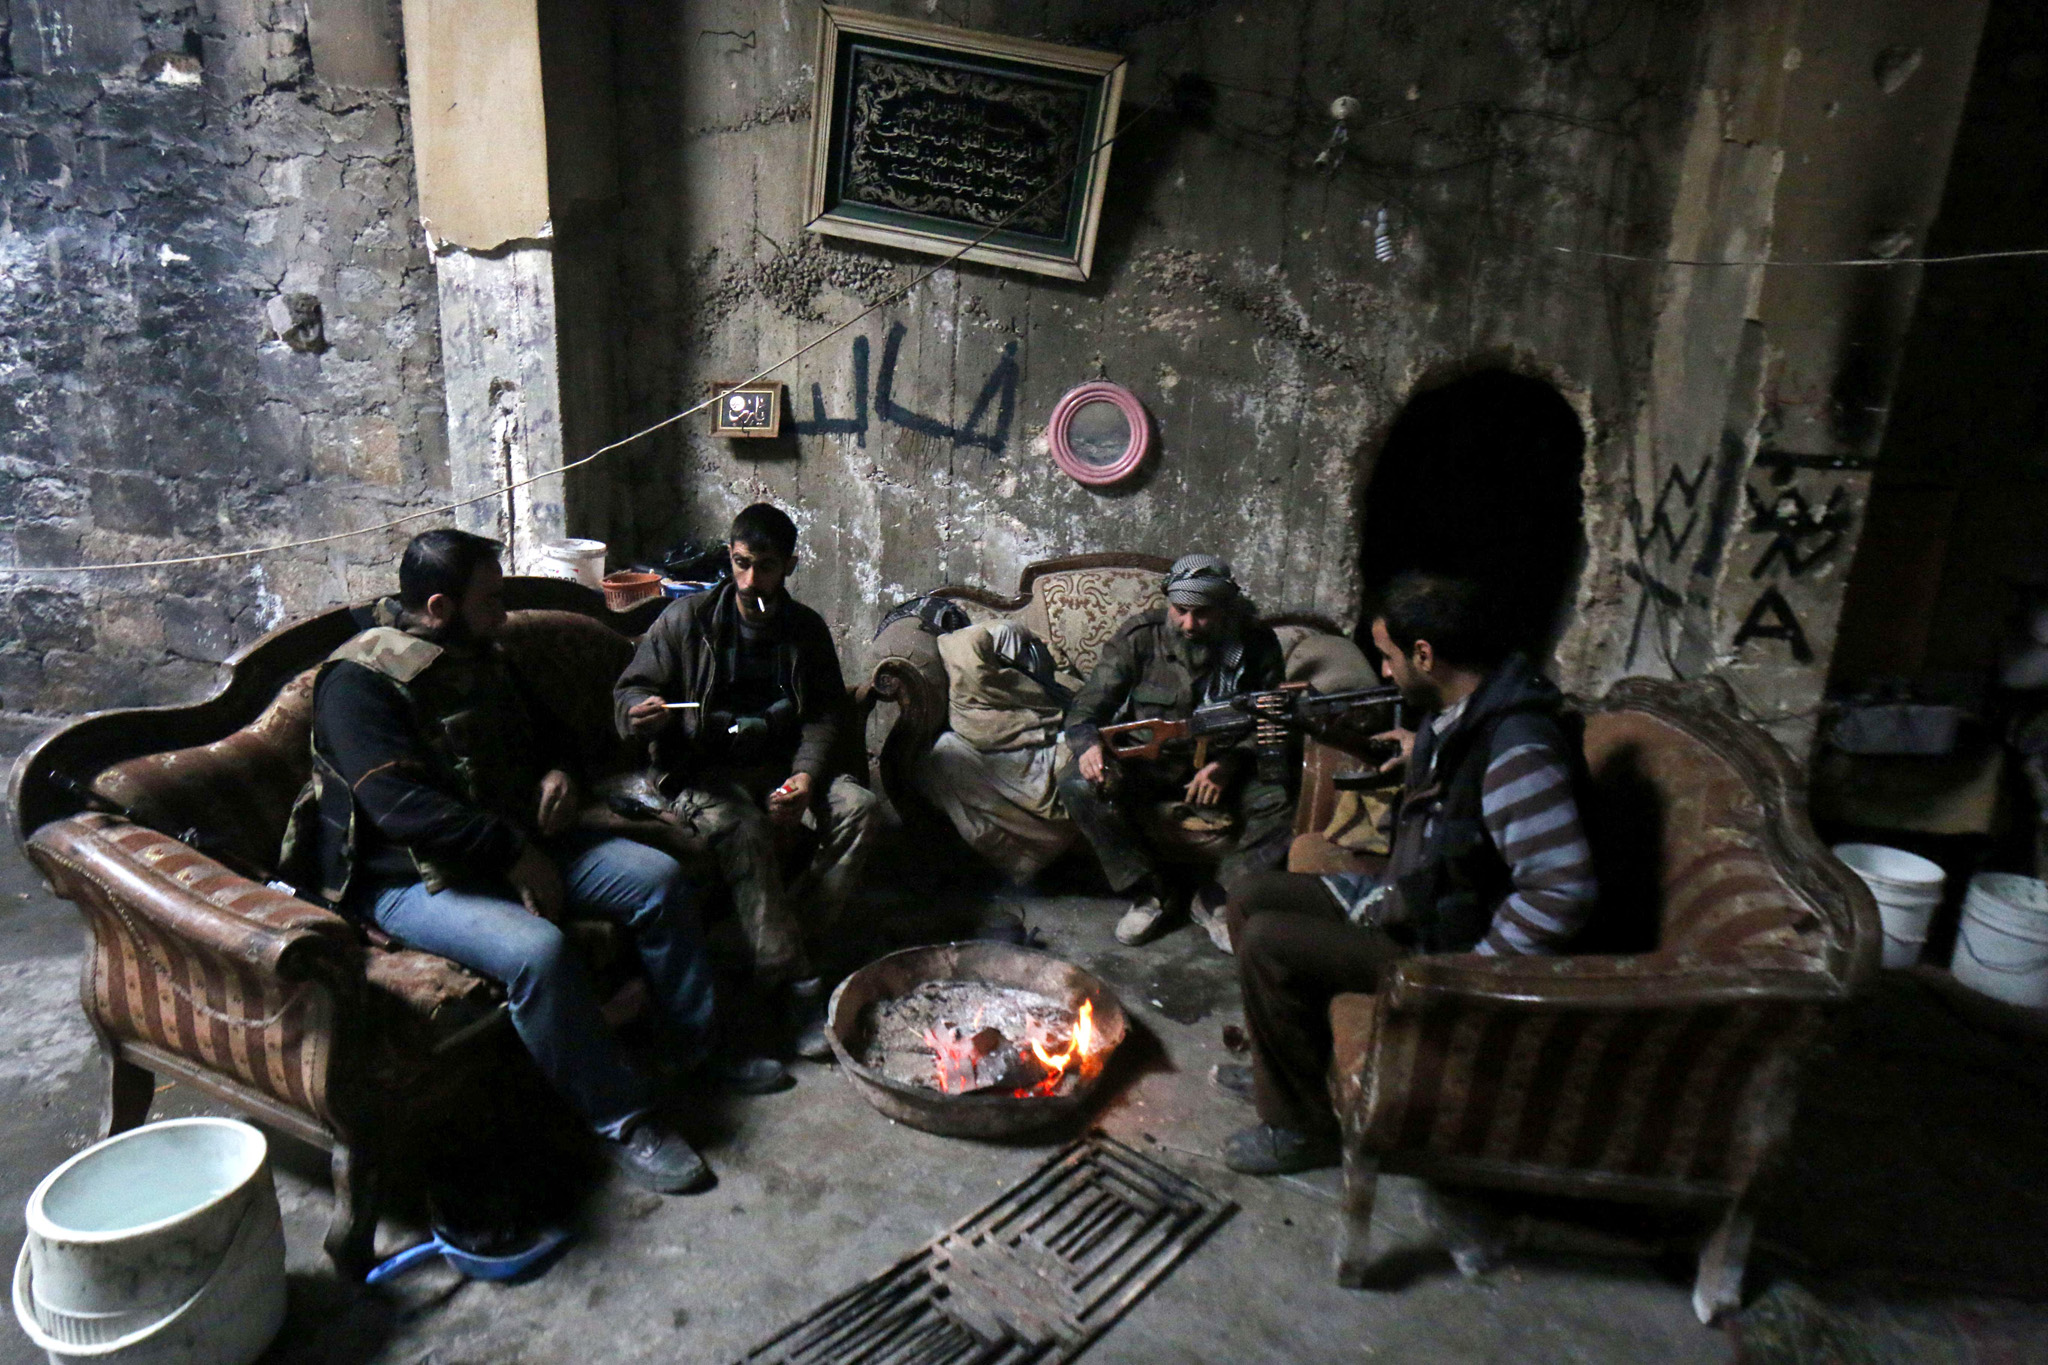 Opposition fighters sit inside a damaged...Opposition fighters sit inside a damaged building in the rebel-held Qastal al-Harami neighborhood, in the northern Syrian city of Aleppo, on March 24, 2015. AFP PHOTO / AMC / ZEIN AL-RIFAIZEIN AL-RIFAI/AFP/Getty Images